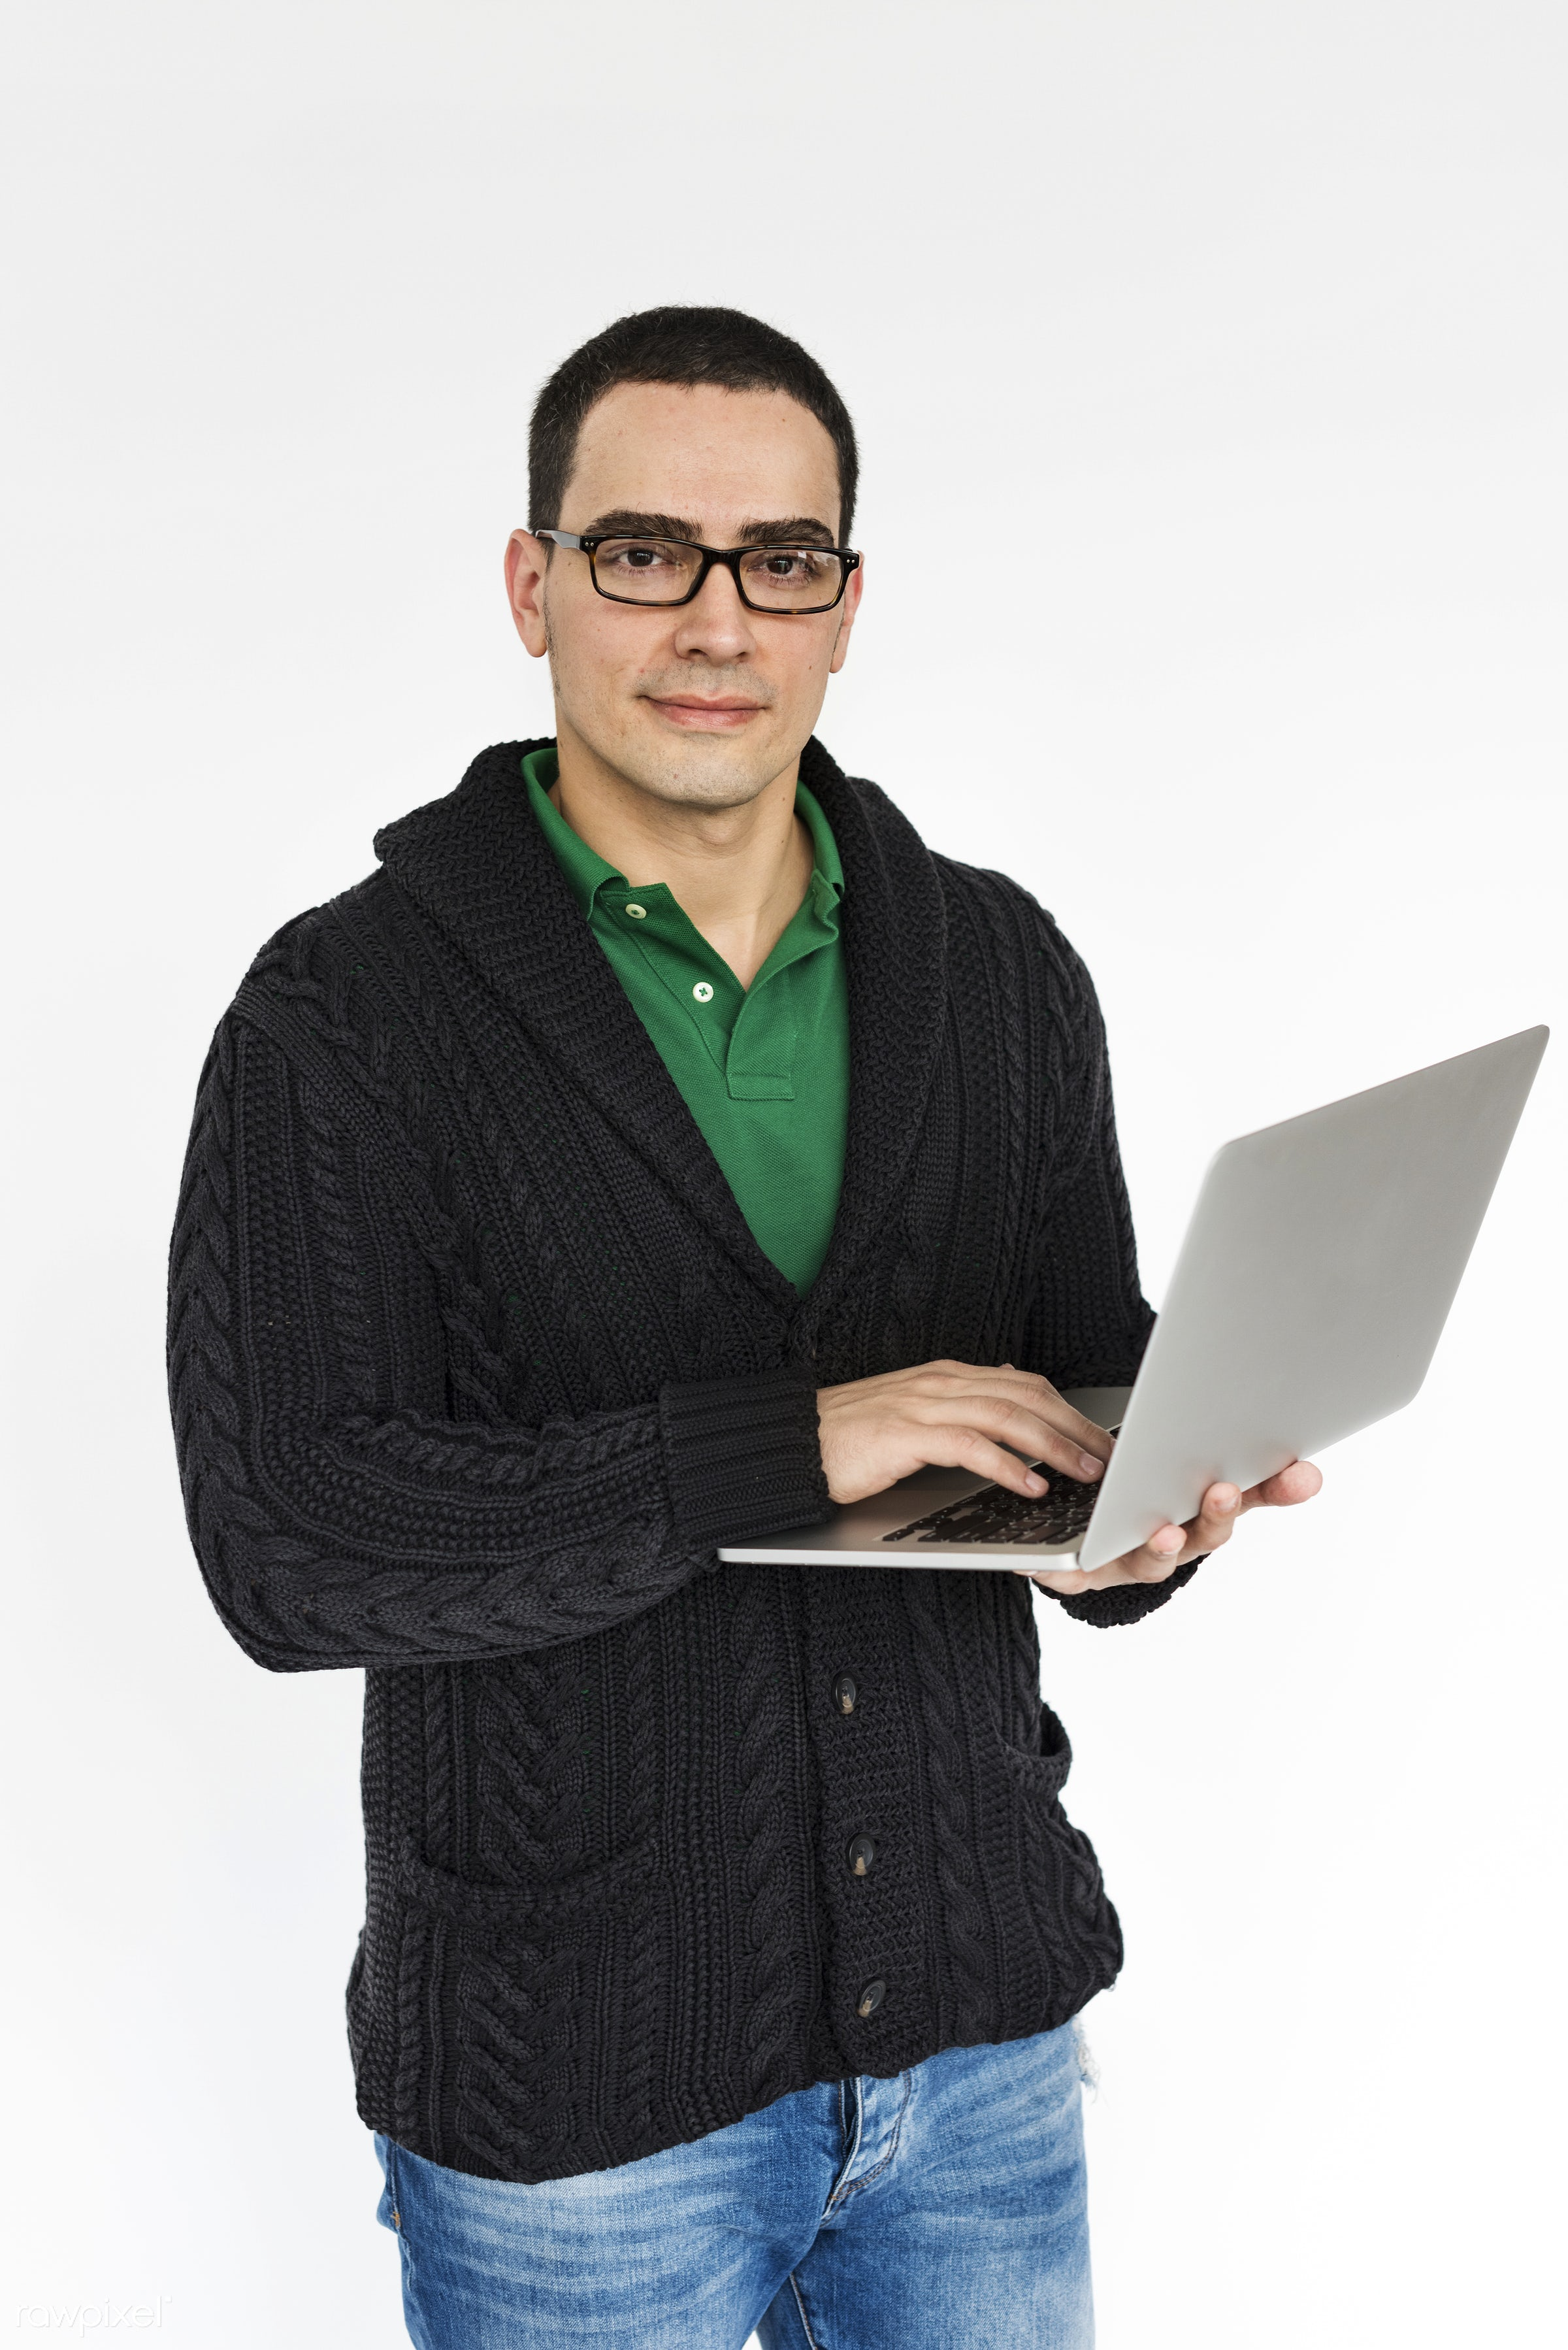 studio, impressed, using, person, technology, portable, holding, caucasian, laptop, positive, smile, serious, cheerful,...